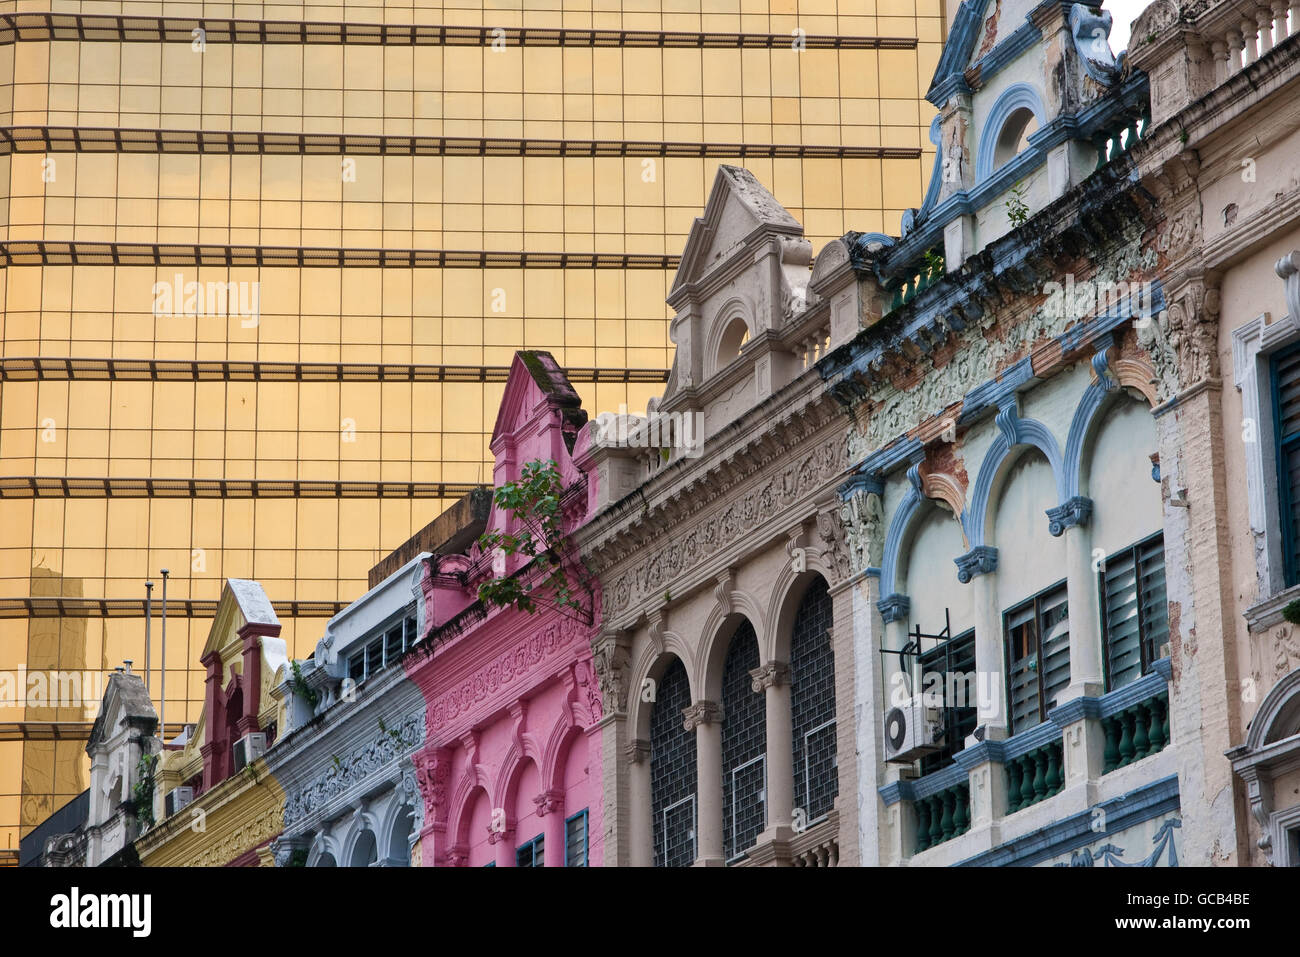 Old and new buildings in Kuala Lumpur - Stock Image